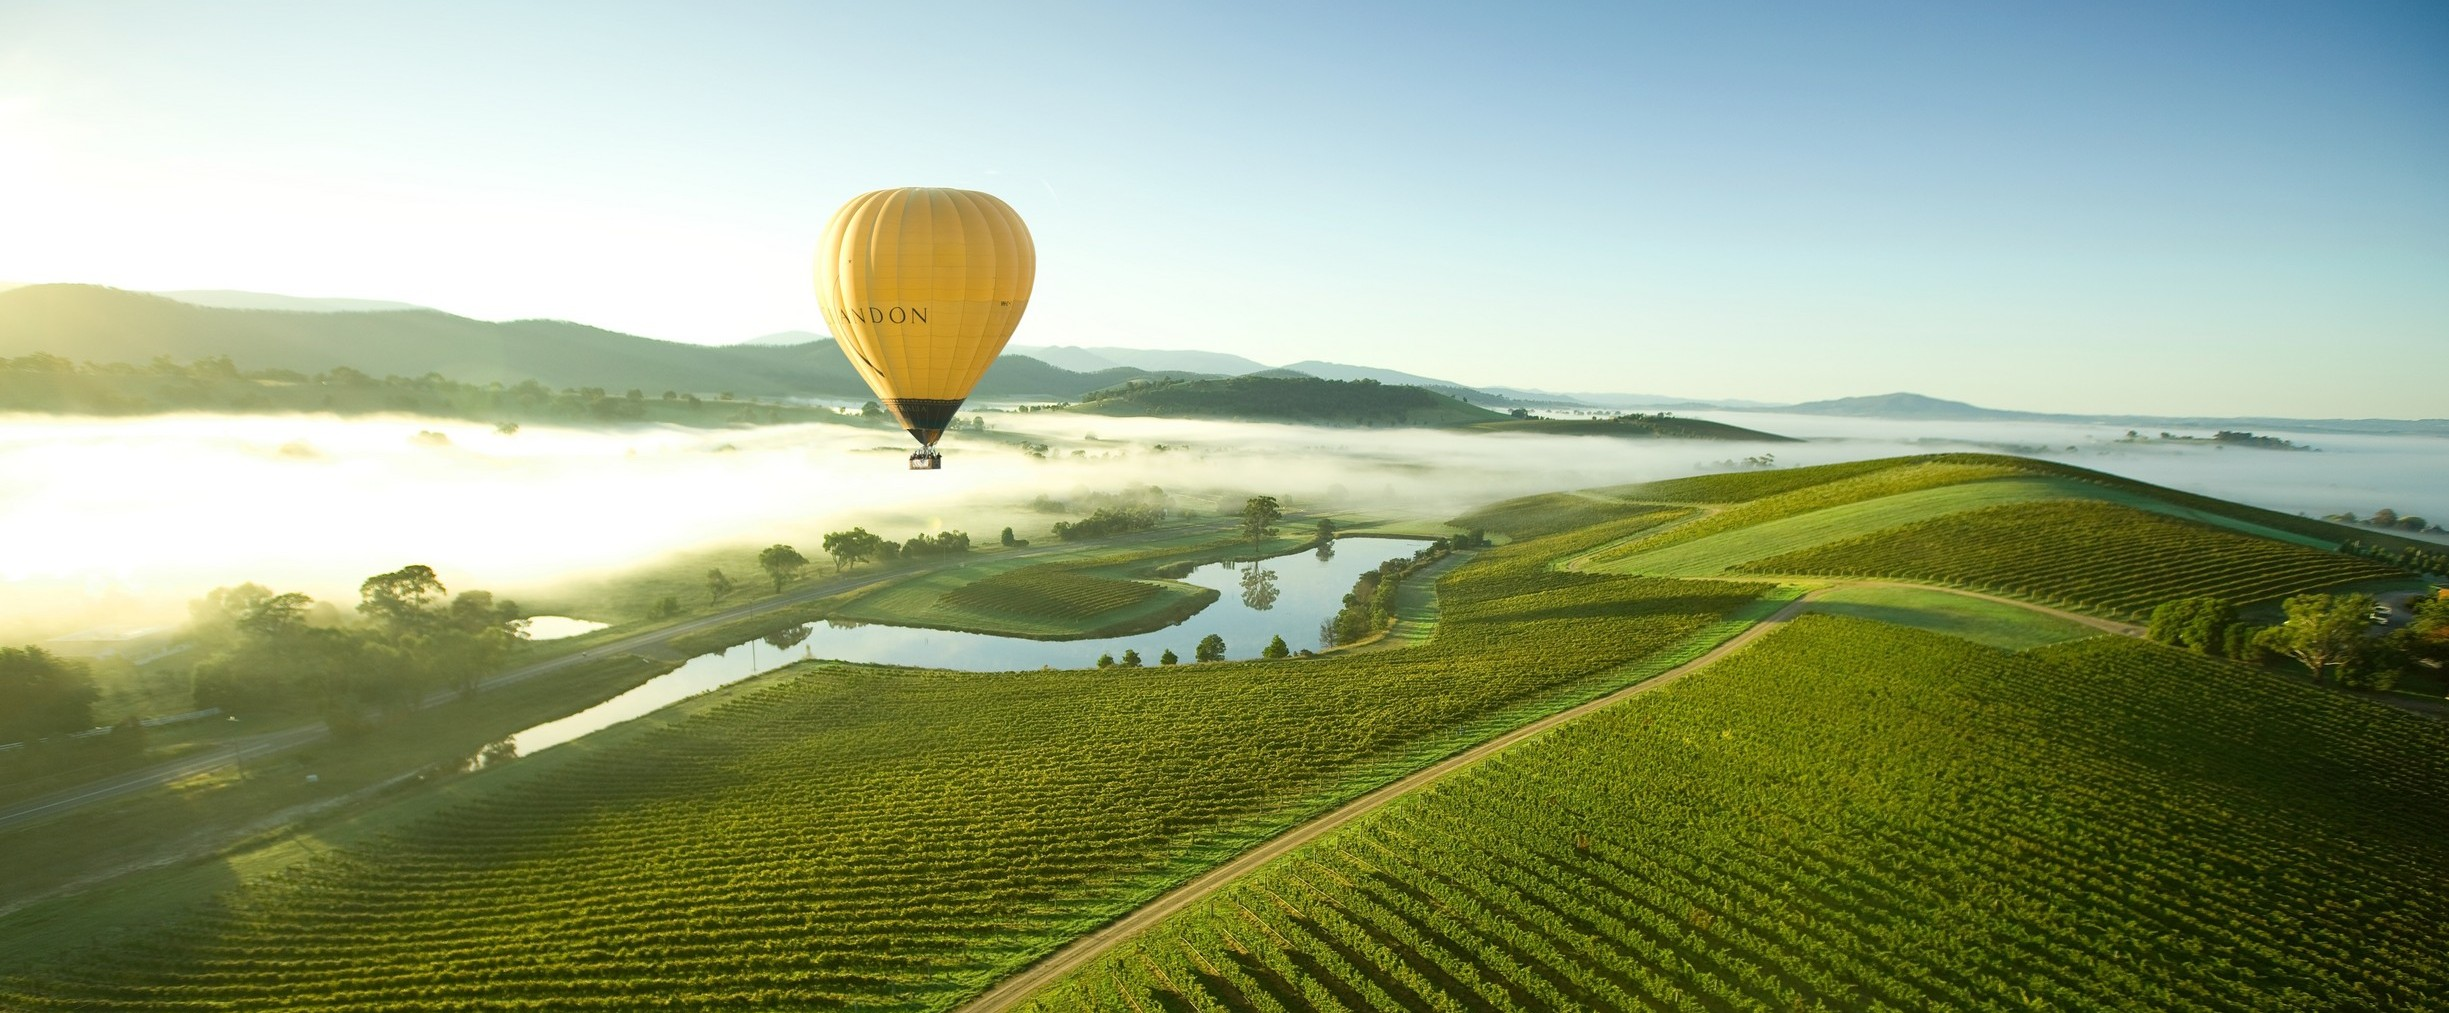 http://assets.boxdice.com.au/bell-re/attachments/bfb/96f/balloon_yarra_valley_2.jpg?0390f8ebbd2d06df50e0df3e4382f903